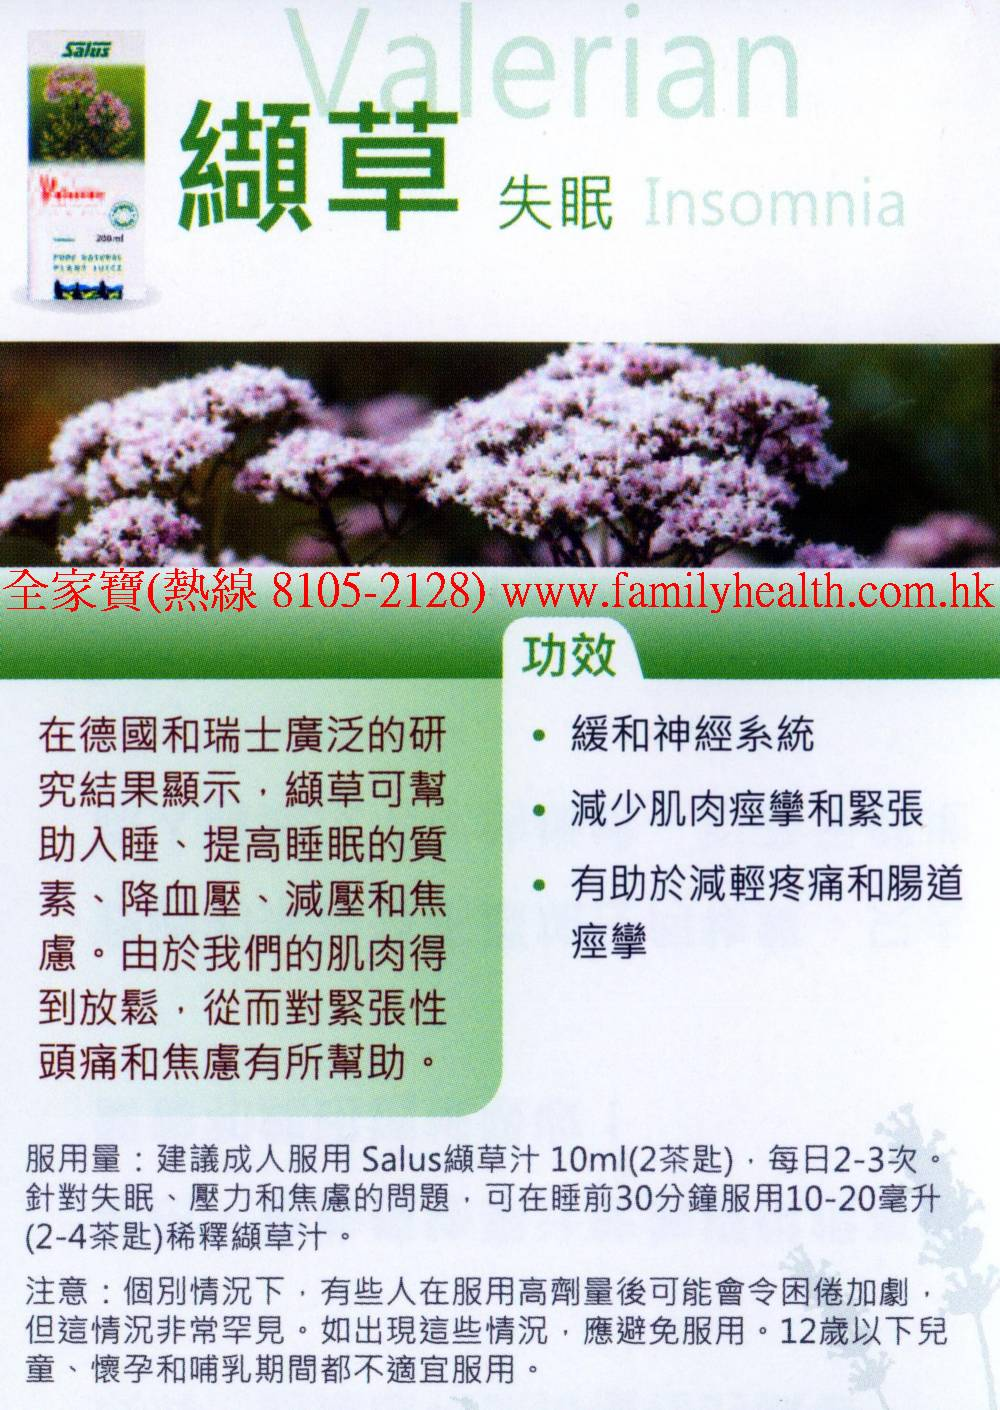 http://www.familyhealth.com.hk/files/full/206_1.jpg